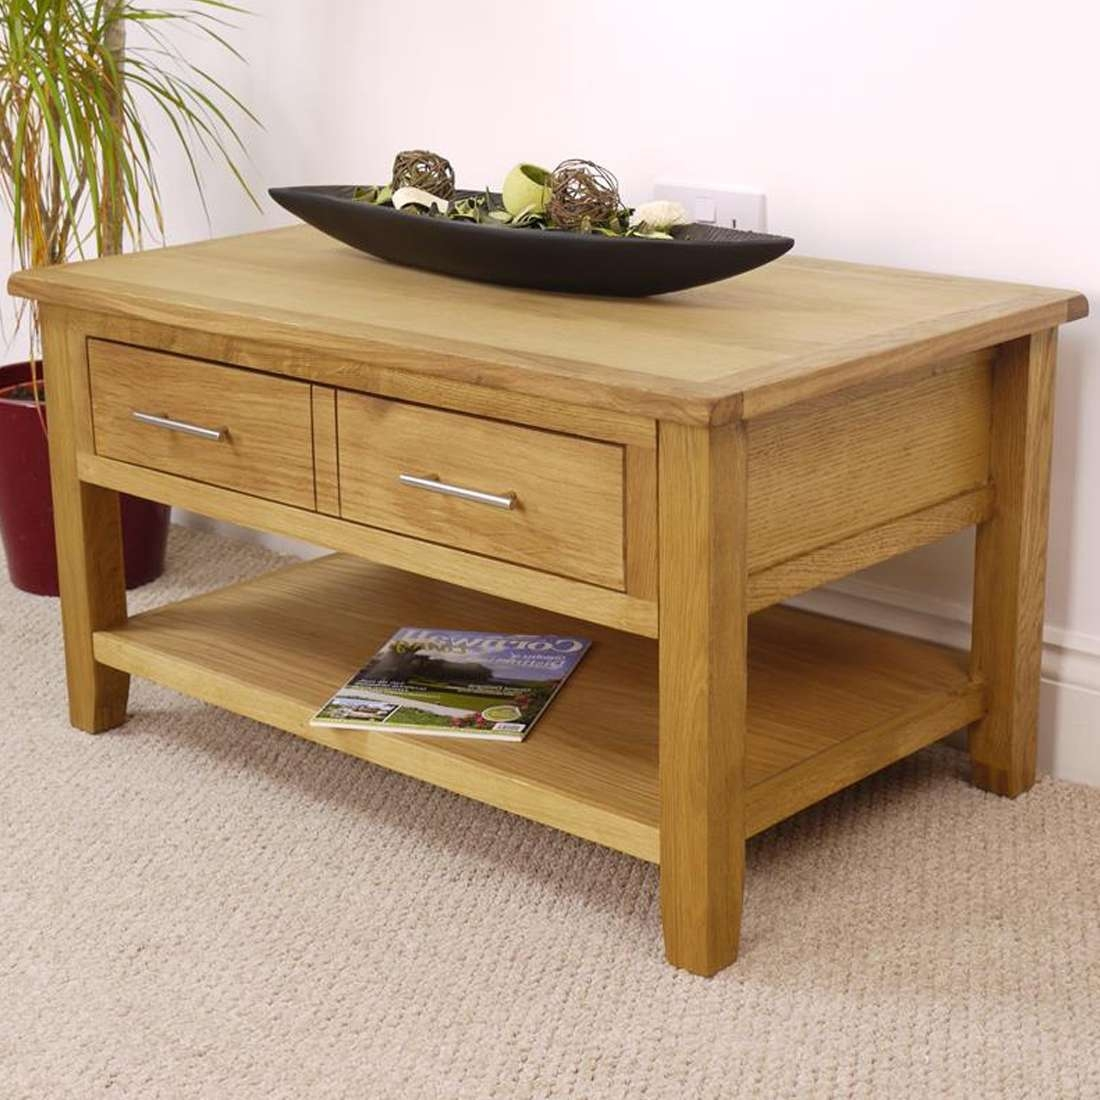 Trendy Oak Coffee Tables With Shelf With Nebraska Modern Oak Coffee Table With 1 Large Drawer & Shelf (View 20 of 20)